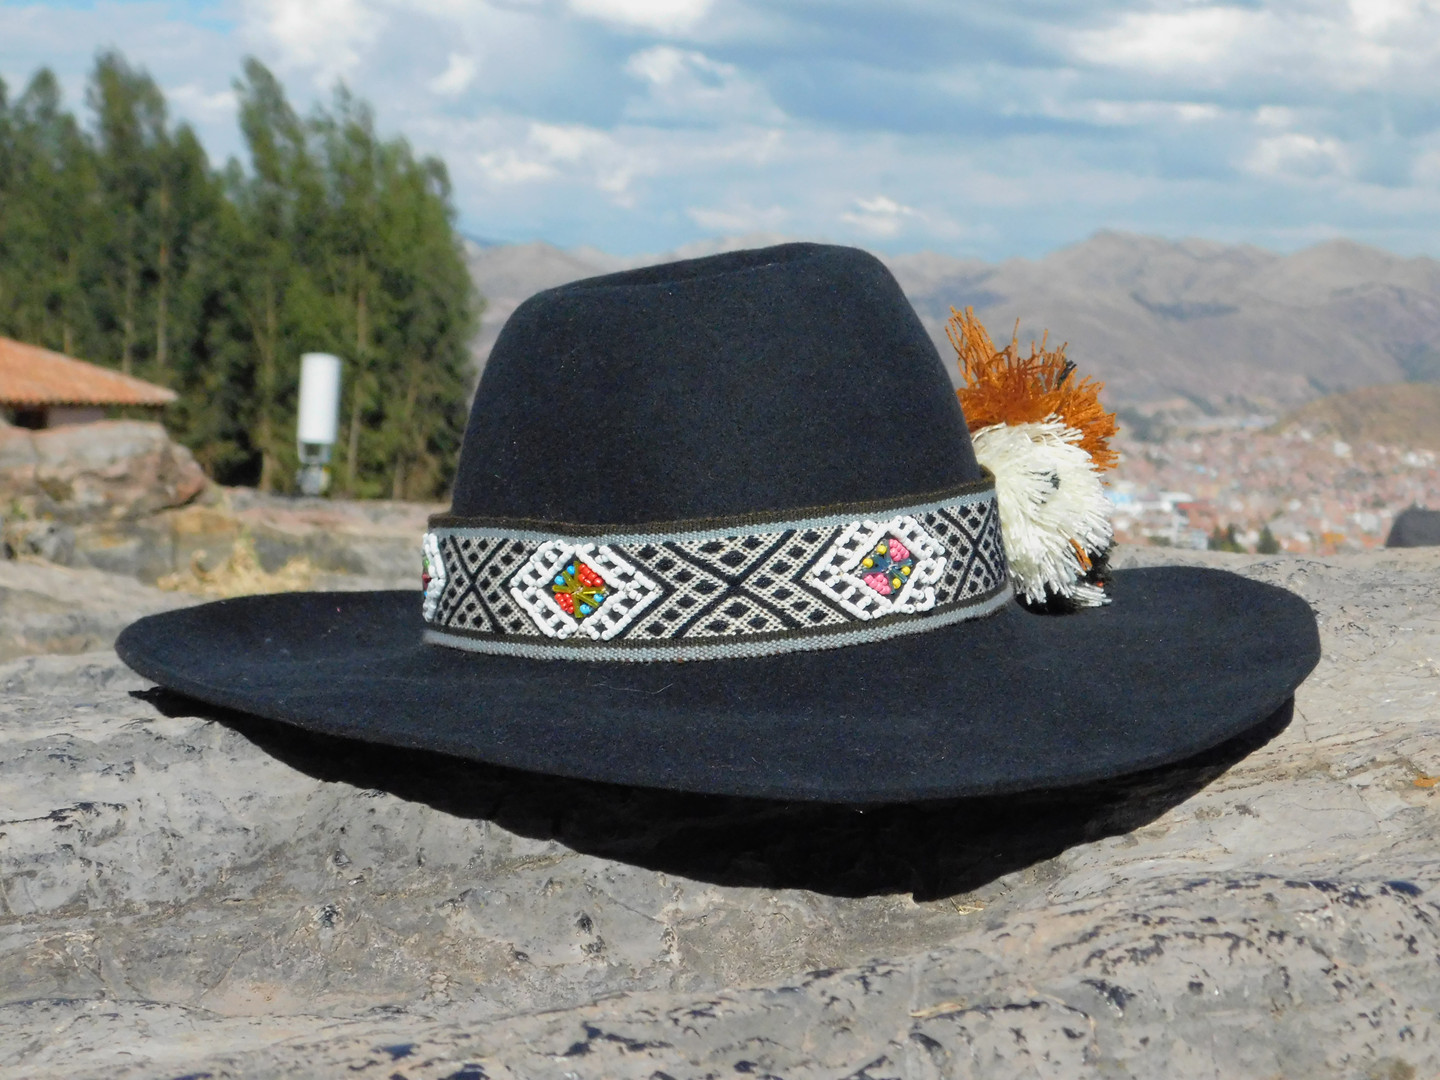 Peruvian sun hat for adults!